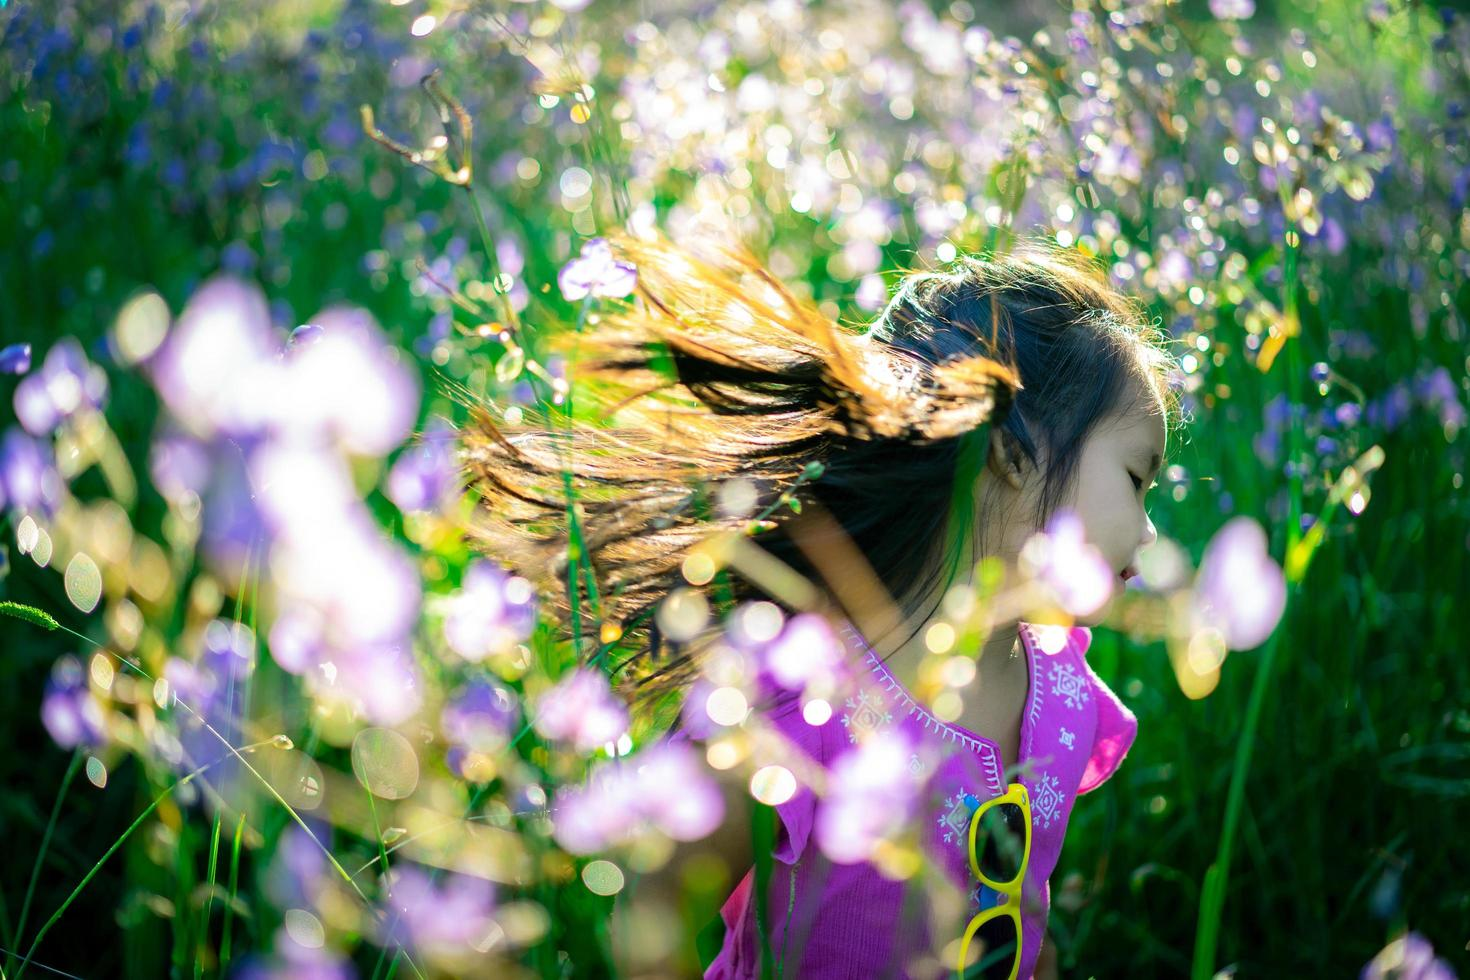 Young Asian girl in a field of flowers photo